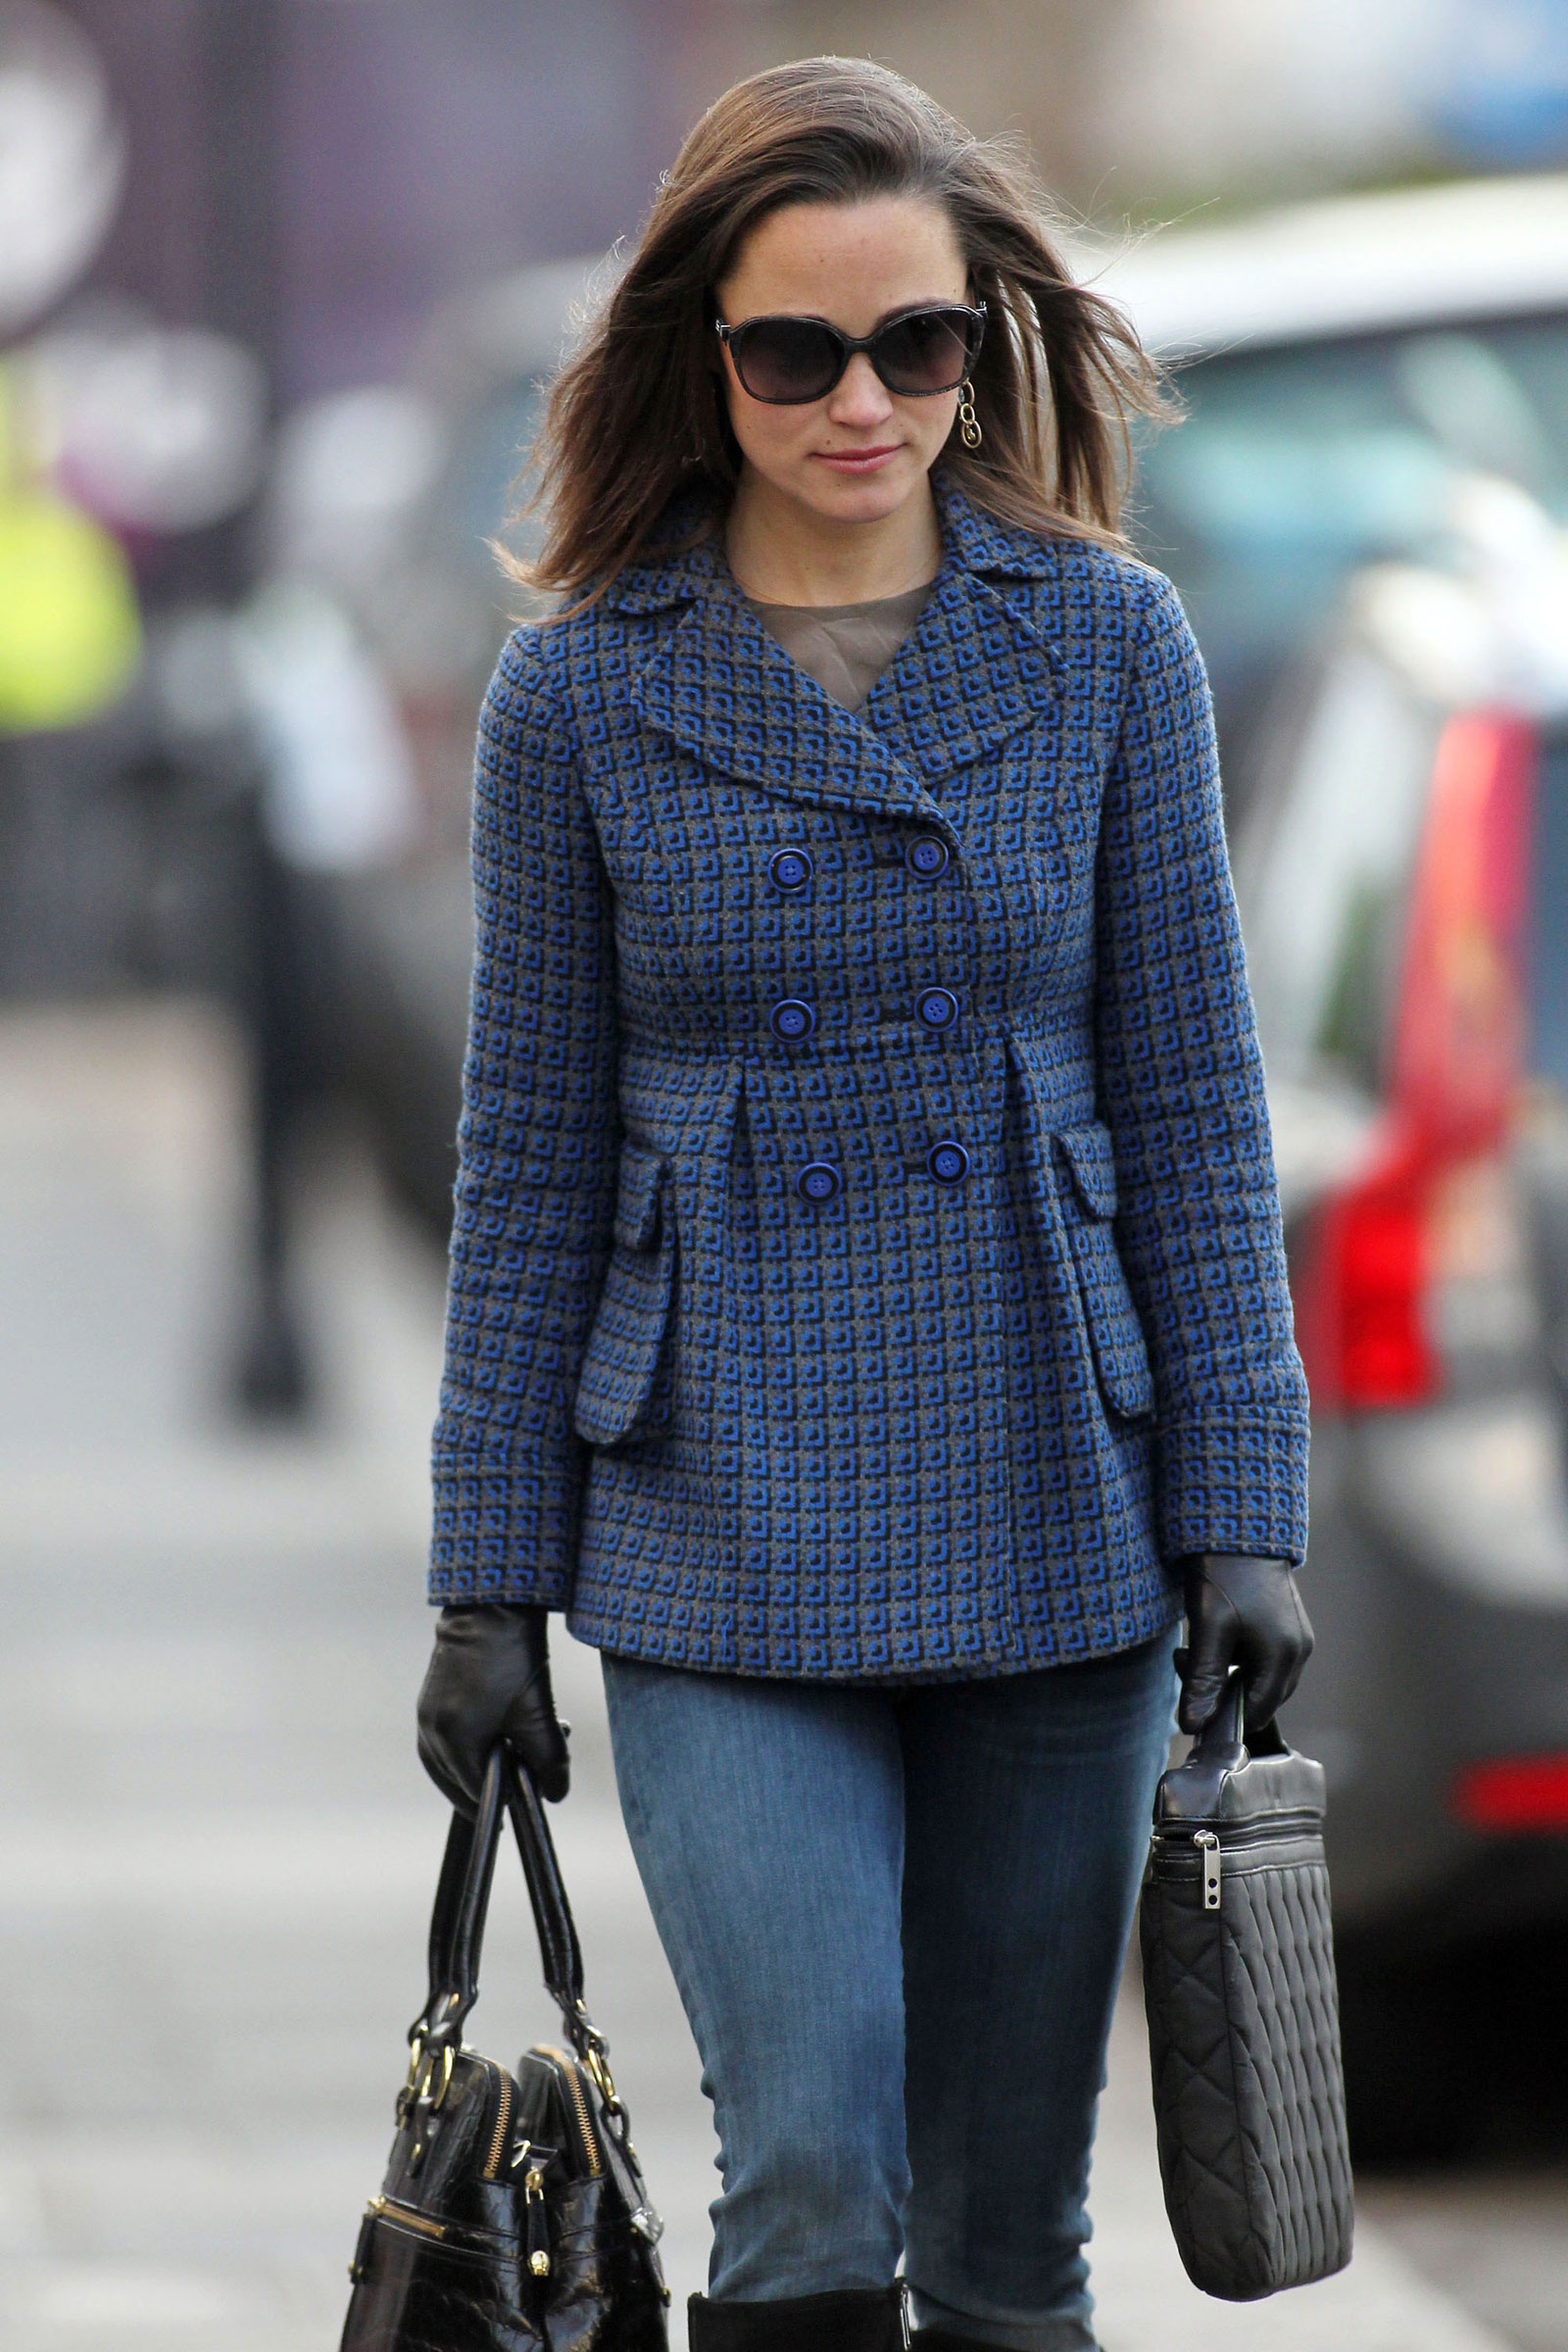 pippa middleton walking to work in chelsea hawtcelebs pippa middleton pippa middleton walking to work in chelsea pippa middleton middot pippa middleton